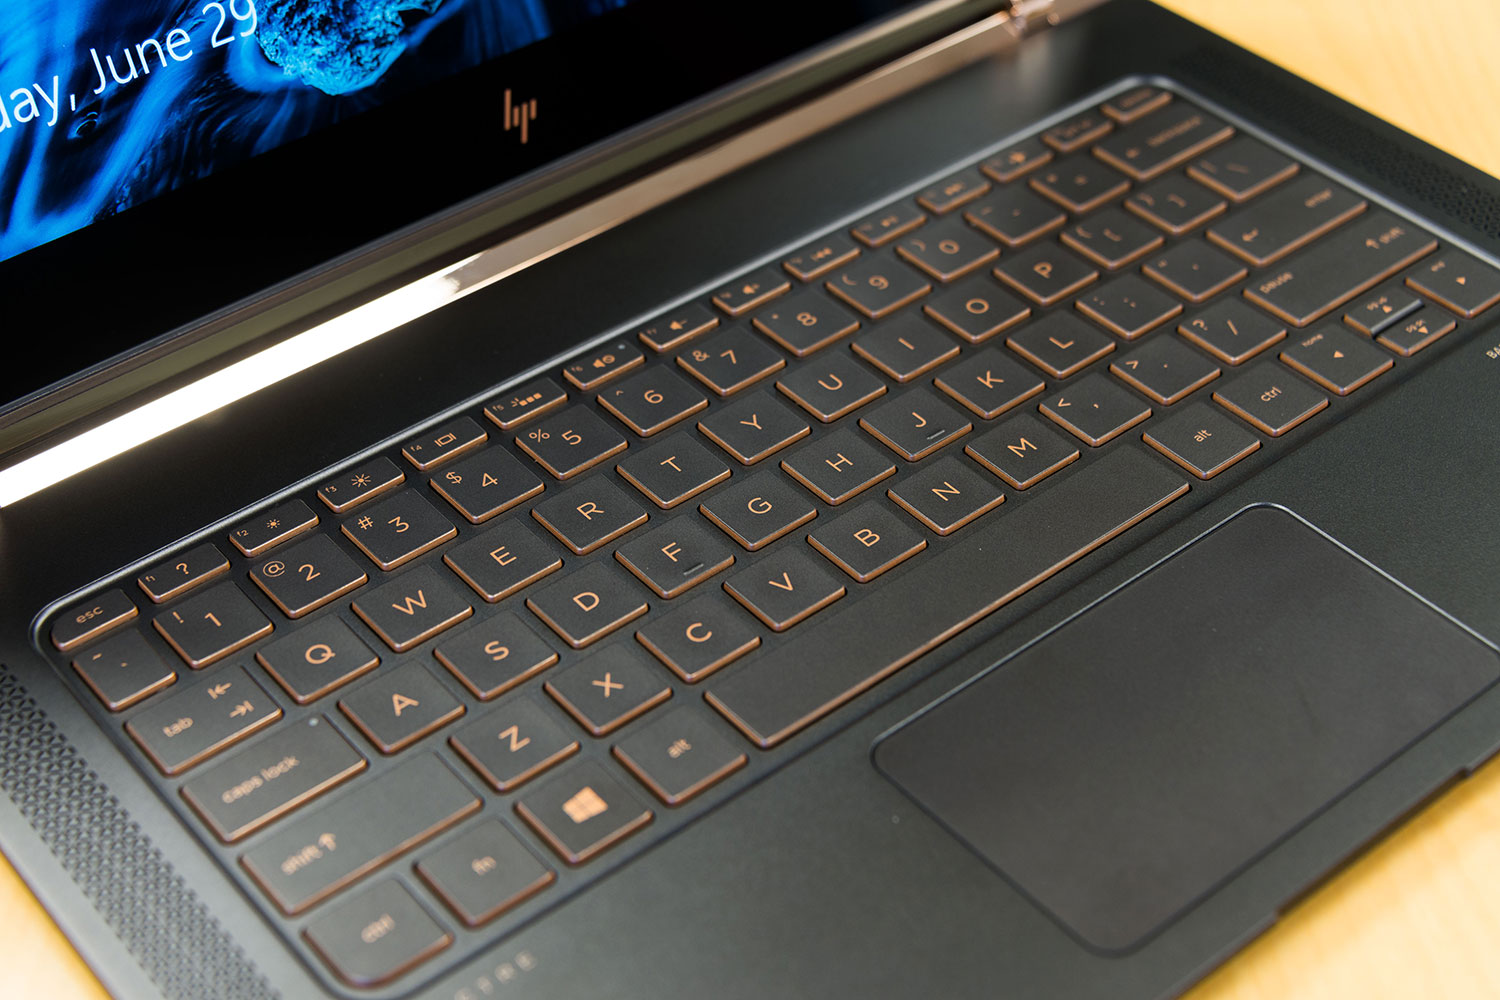 Hp notebook for sale - Hp Labor Day Sale Deal Spectre